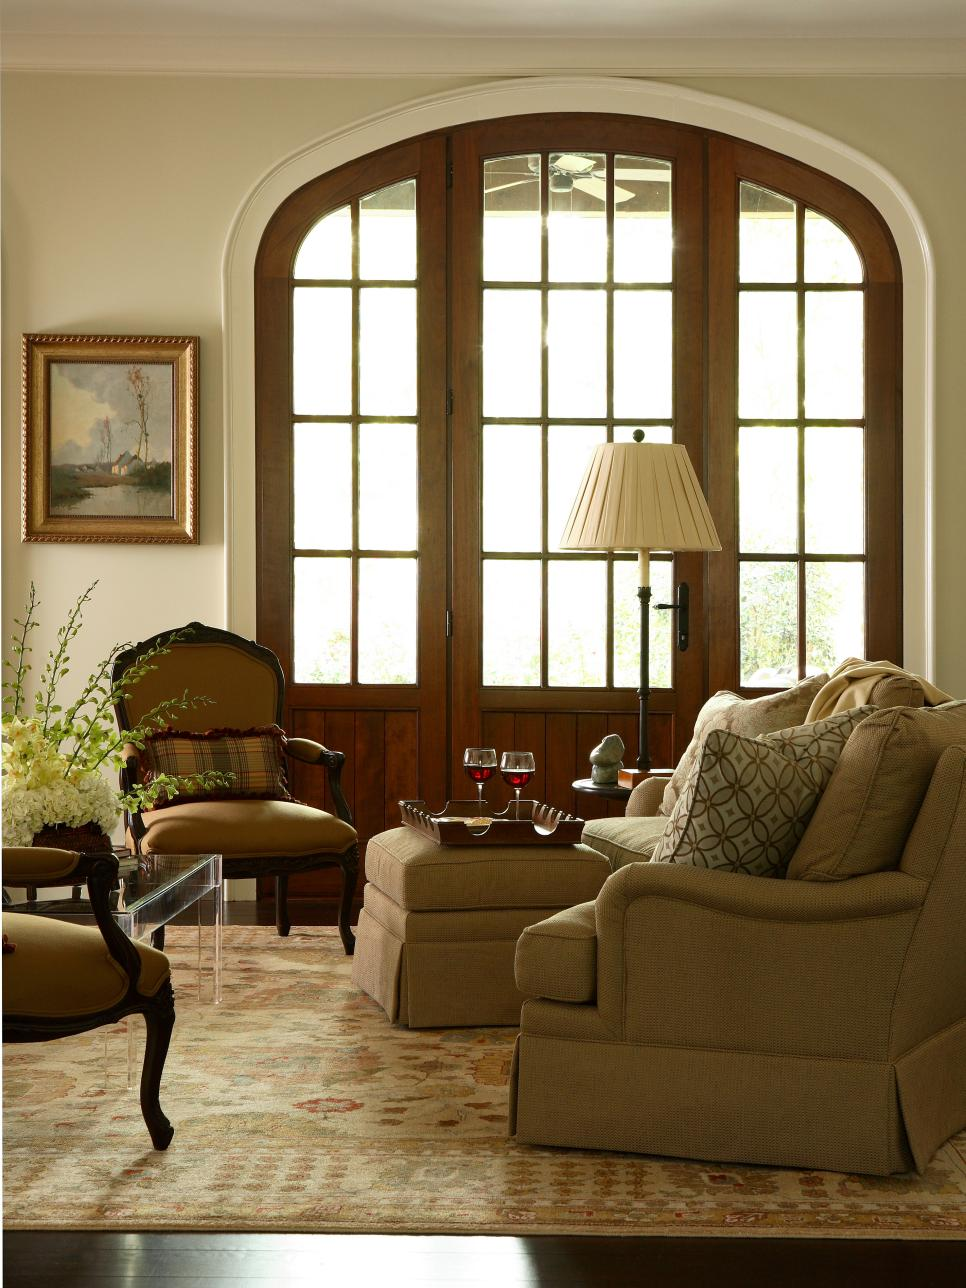 Traditional Room With French Doors